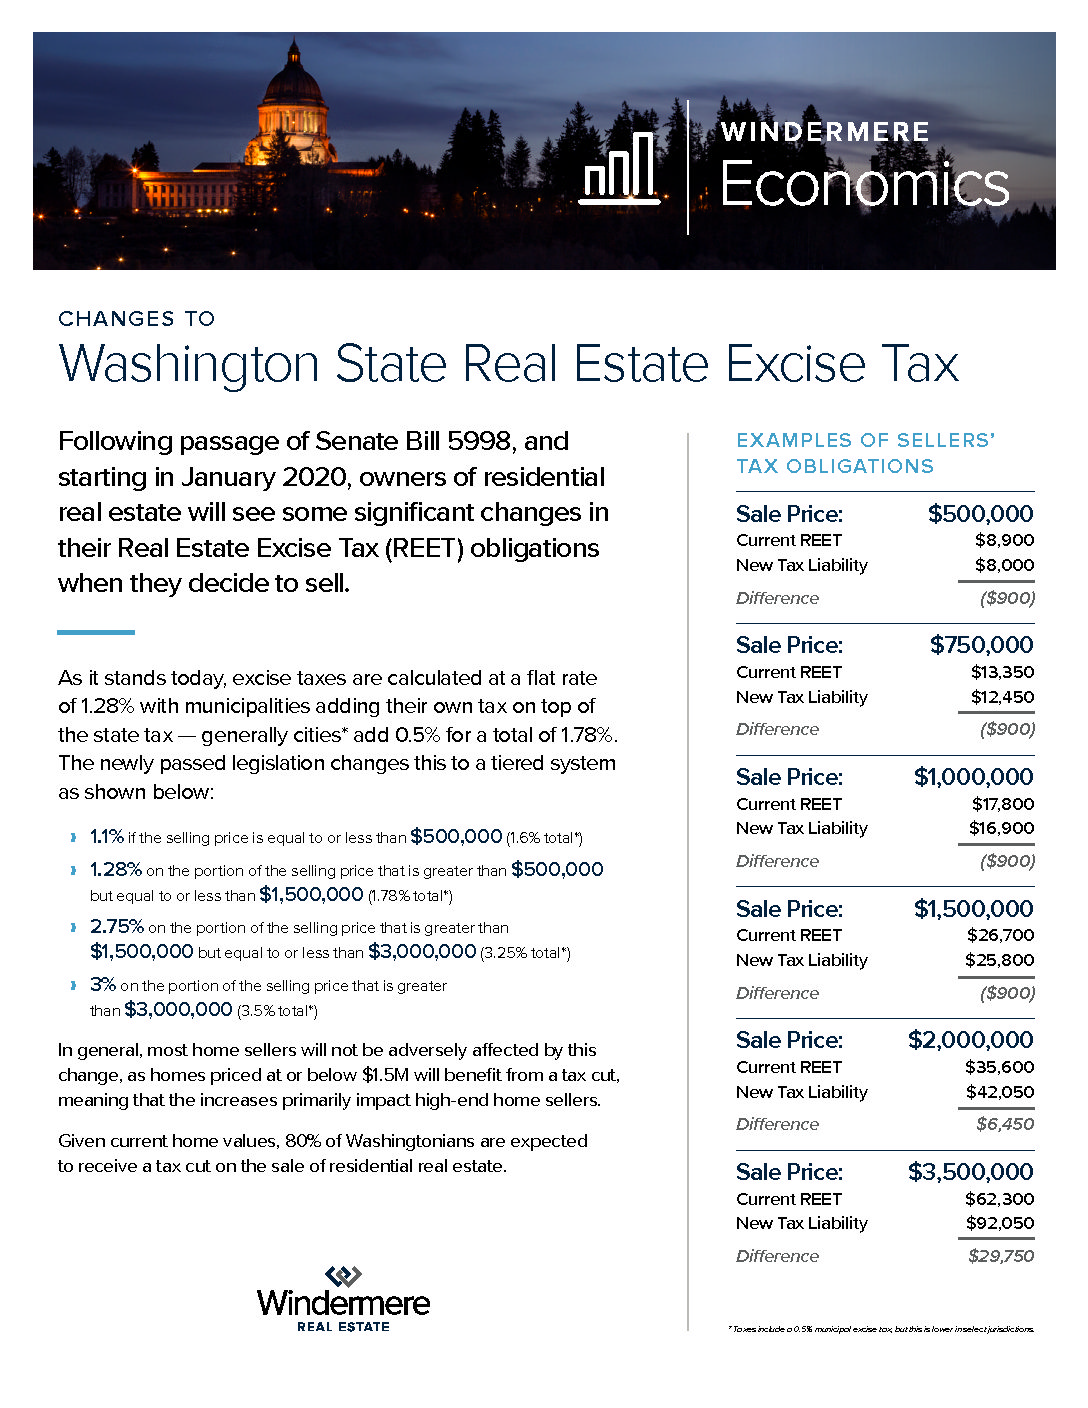 WA State Real Estate Excise Tax – January 2020 Changes